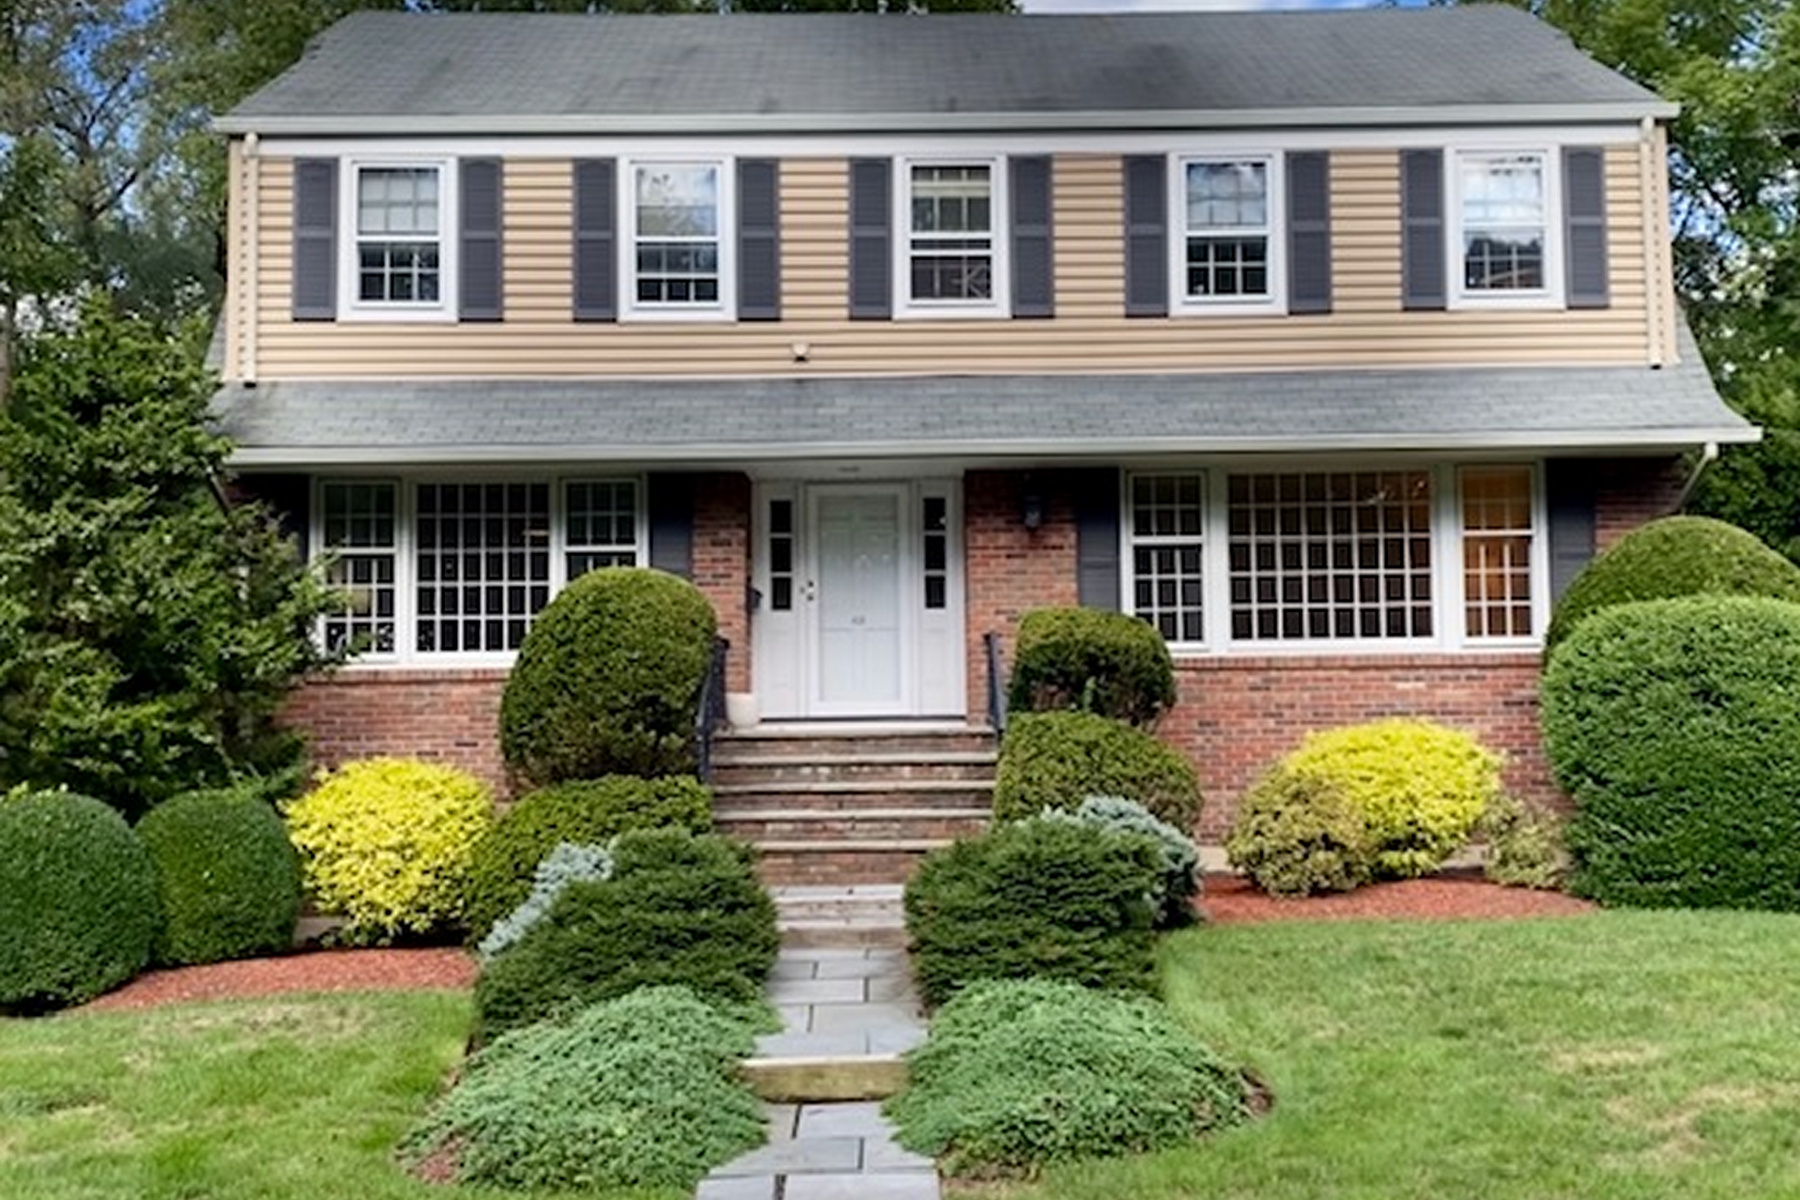 Single Family Homes for Sale at East Hill 48 Central Ave, Demarest, New Jersey 07627 United States